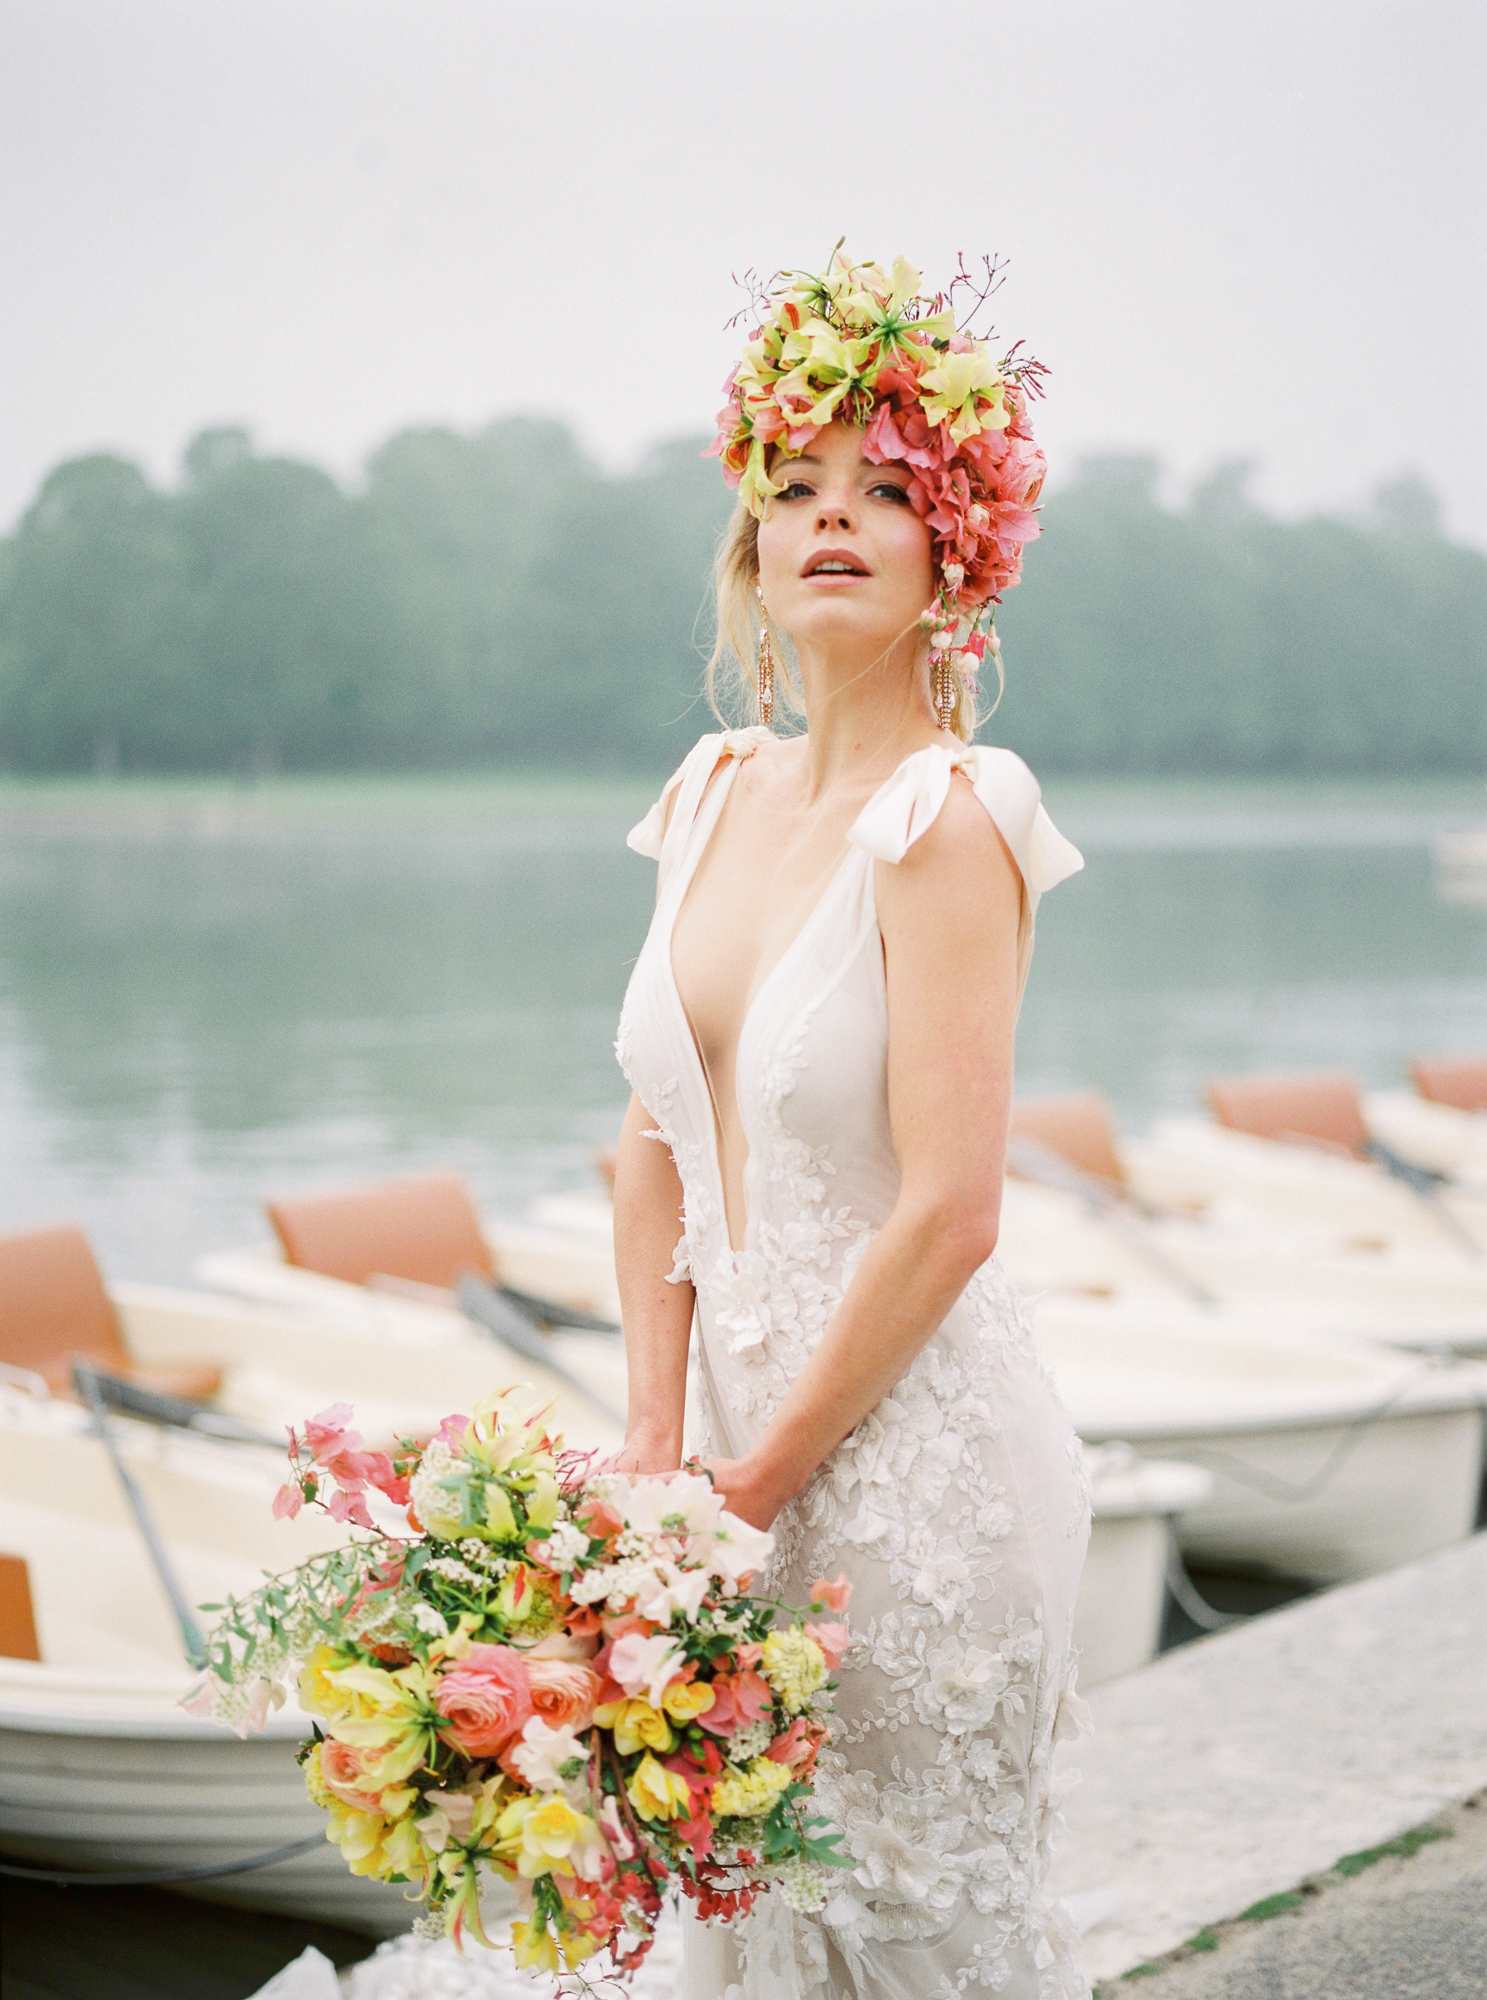 travellur_photoshoot__summer_in_versailles_wedding_flowers_bridal_luxe_shoot_floral_france_bride_head_dress_bouquet.jpg